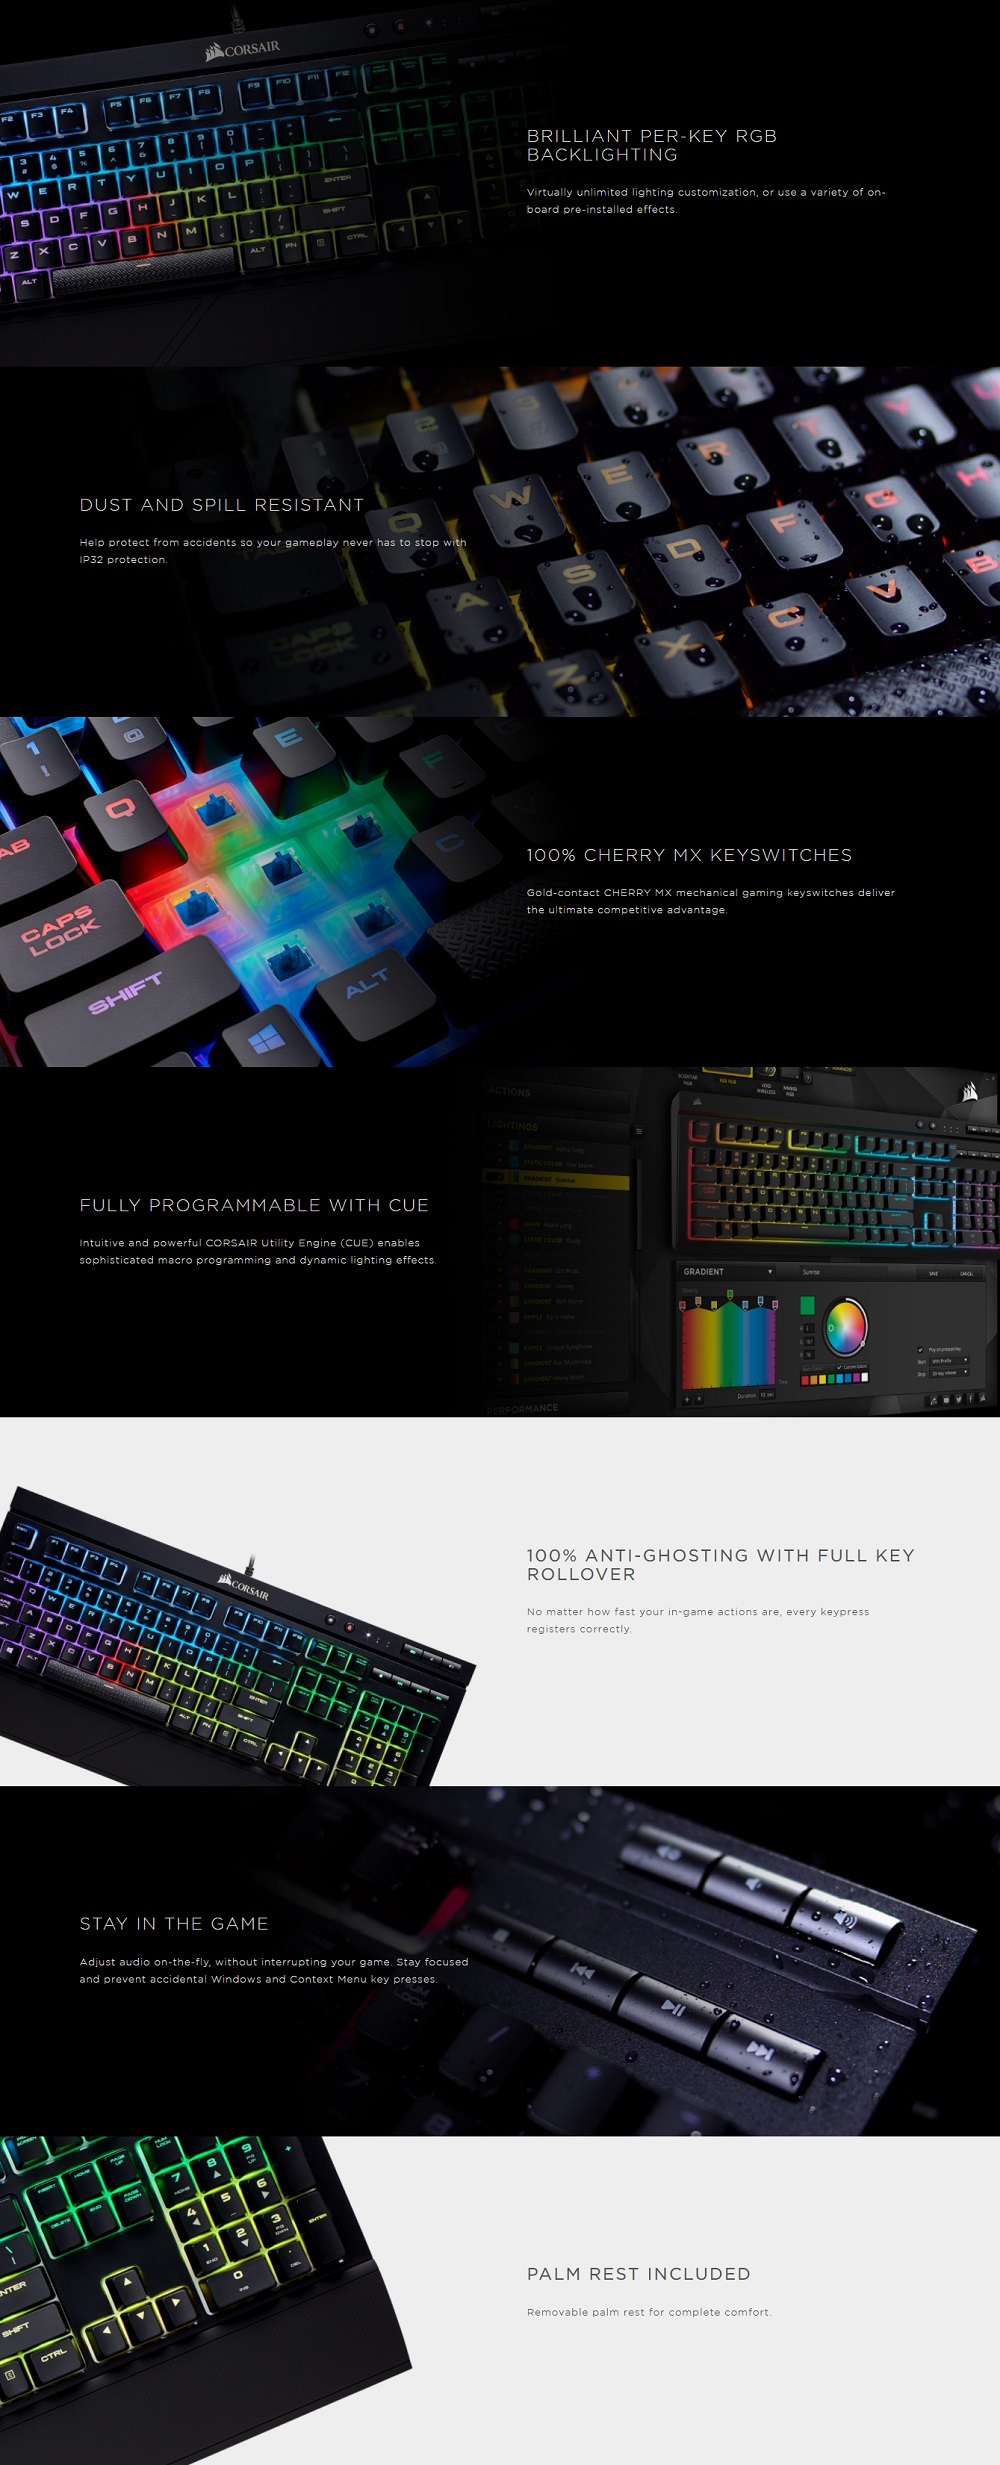 Harga Dan Spesifikasi Corsair K70 Lux Rgb With Cherry Mx Silent Brown Switch Mechanical Keyboard Hitam Gaming Accessories Peripherals Keyboards K68 Switches Vs Red